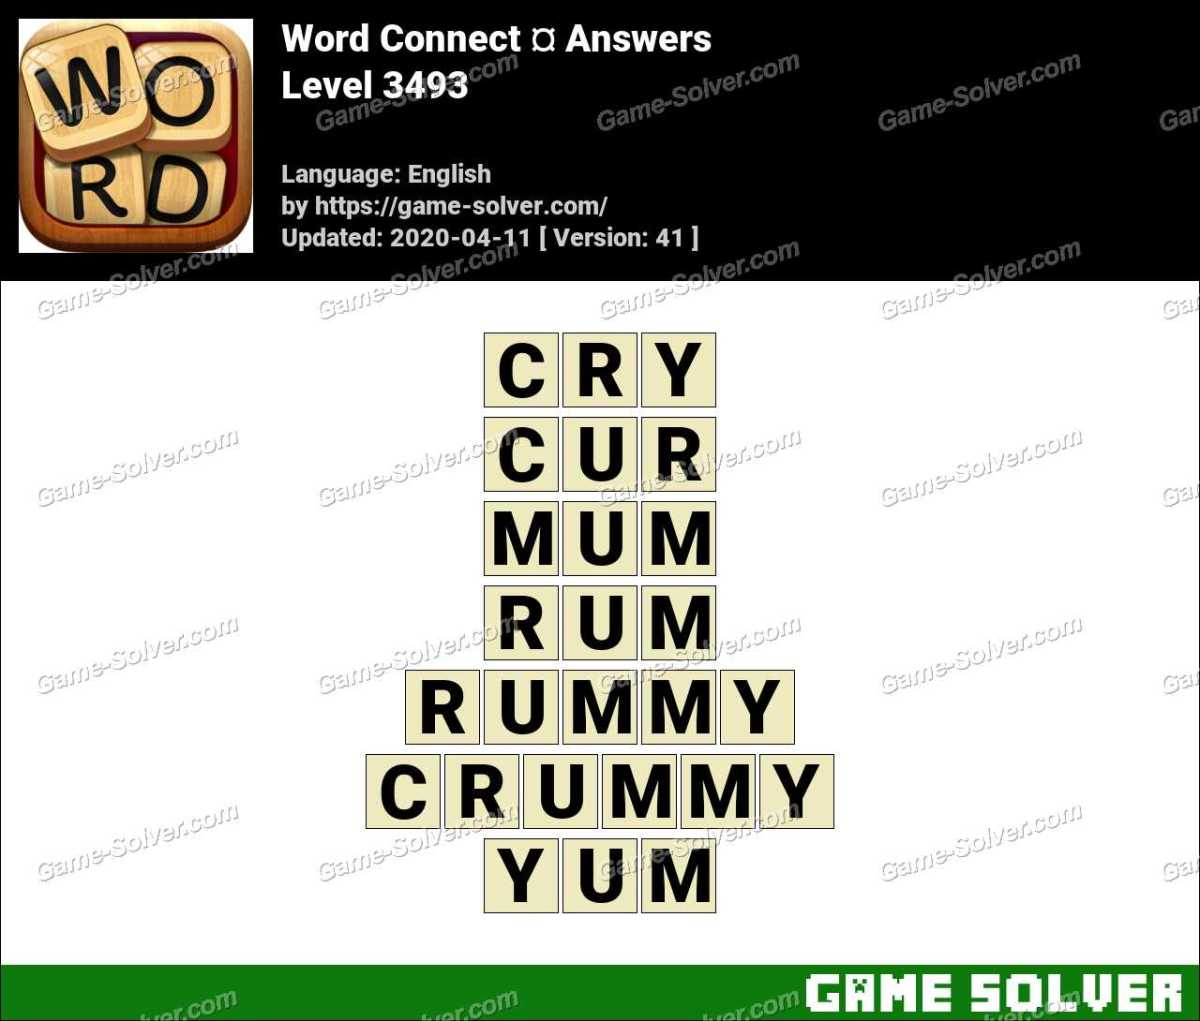 Word Connect Level 3493 Answers